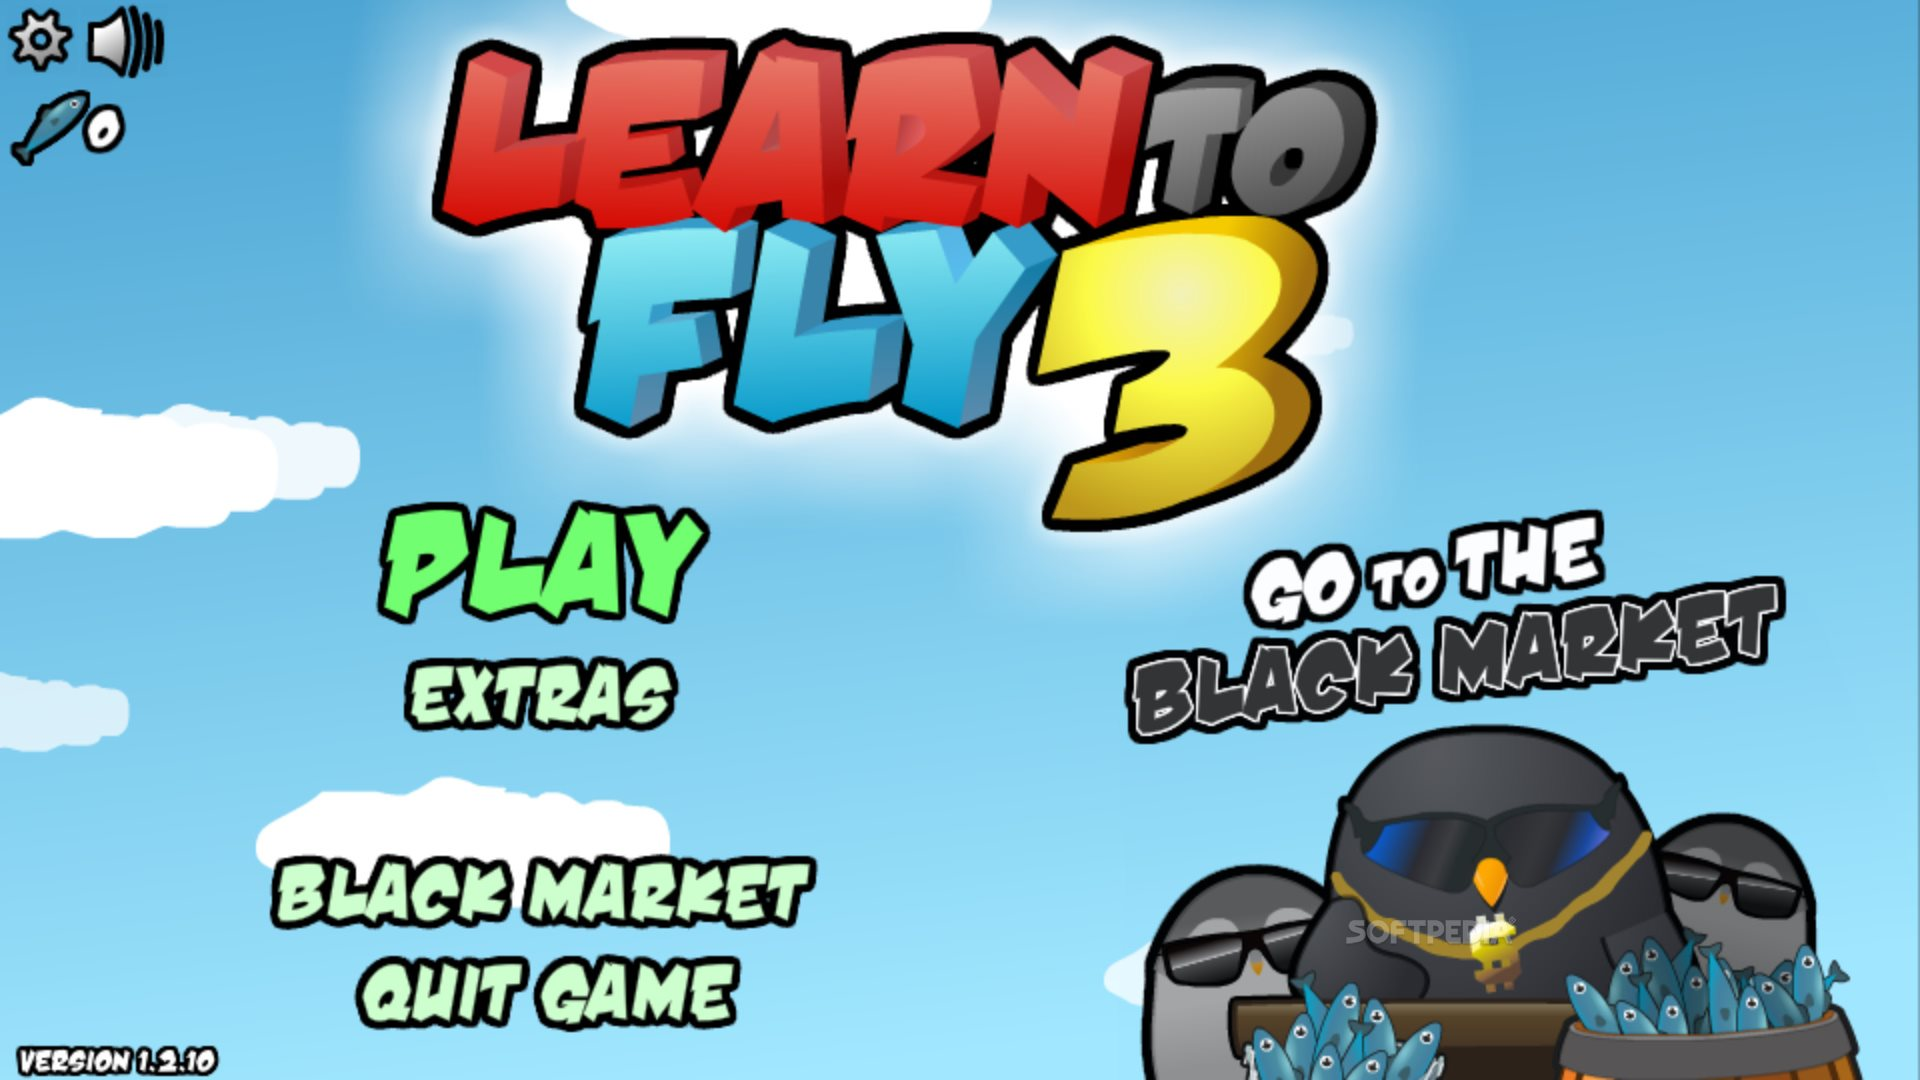 Learn to Fly 2 - Play Learn to Fly 2 on Crazy Games